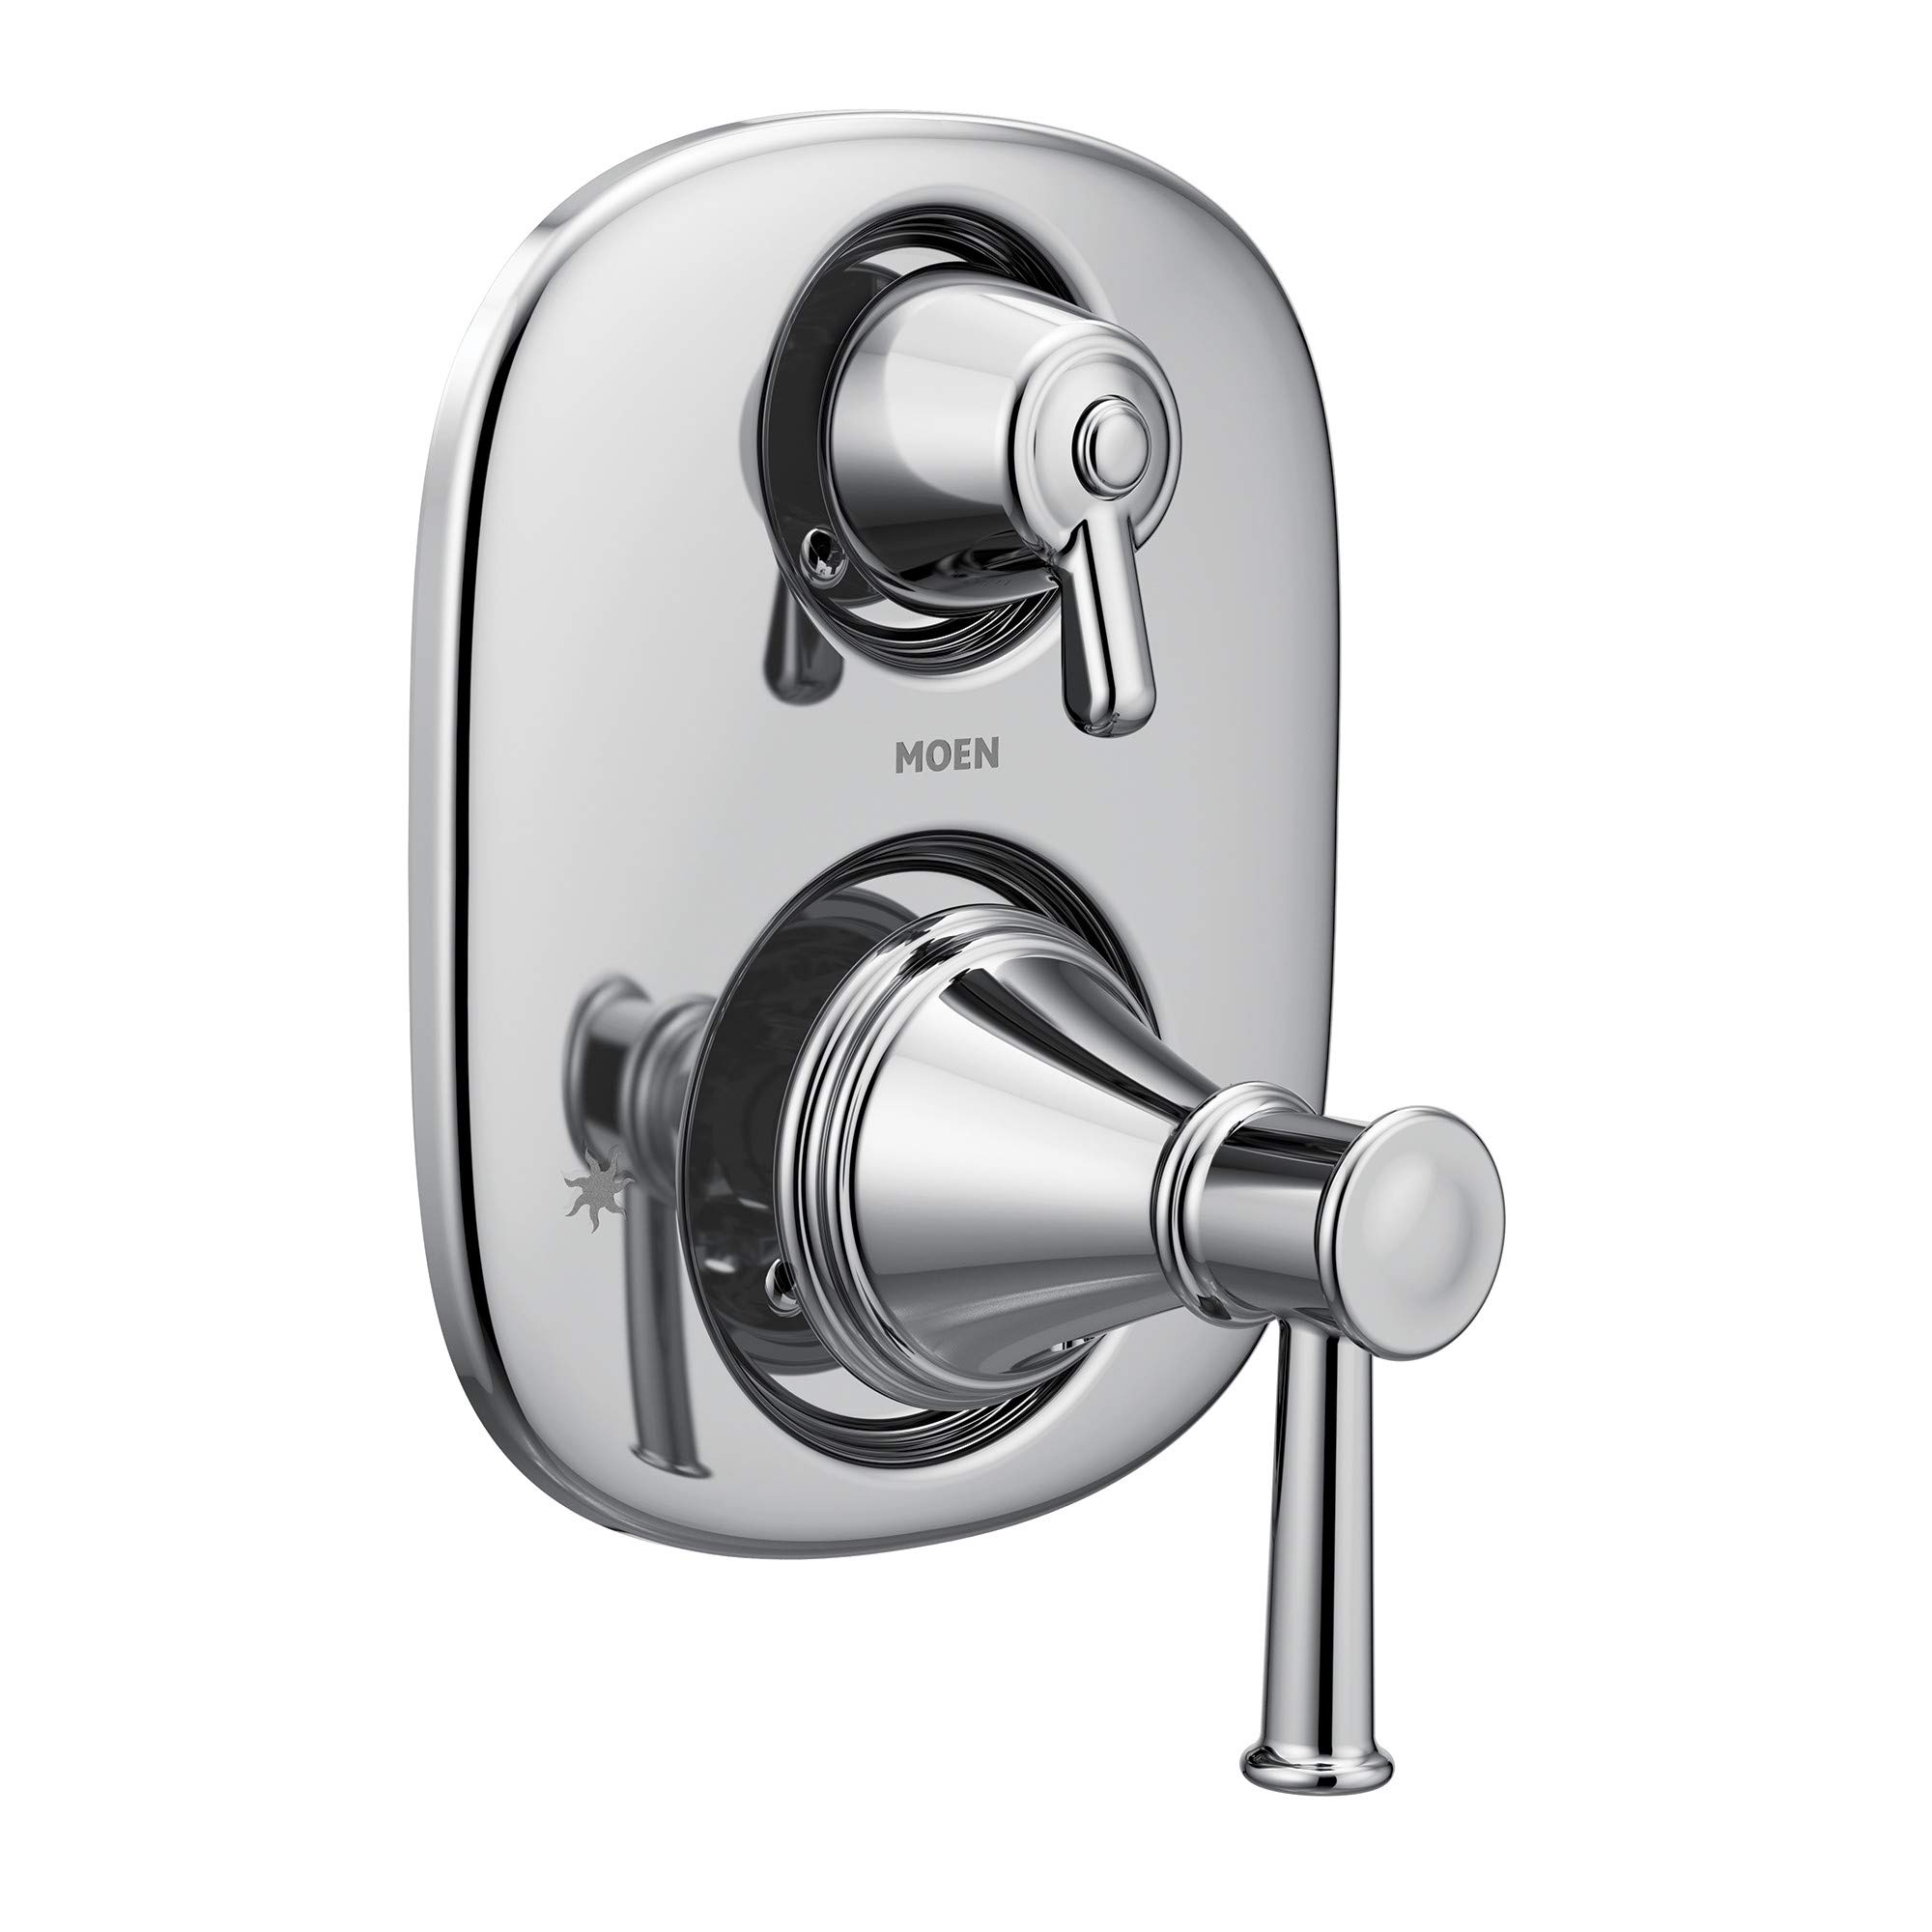 Moen T3322 Belfield Moentrol Transfer Valve Trim, Valve Required, Chrome by Moen